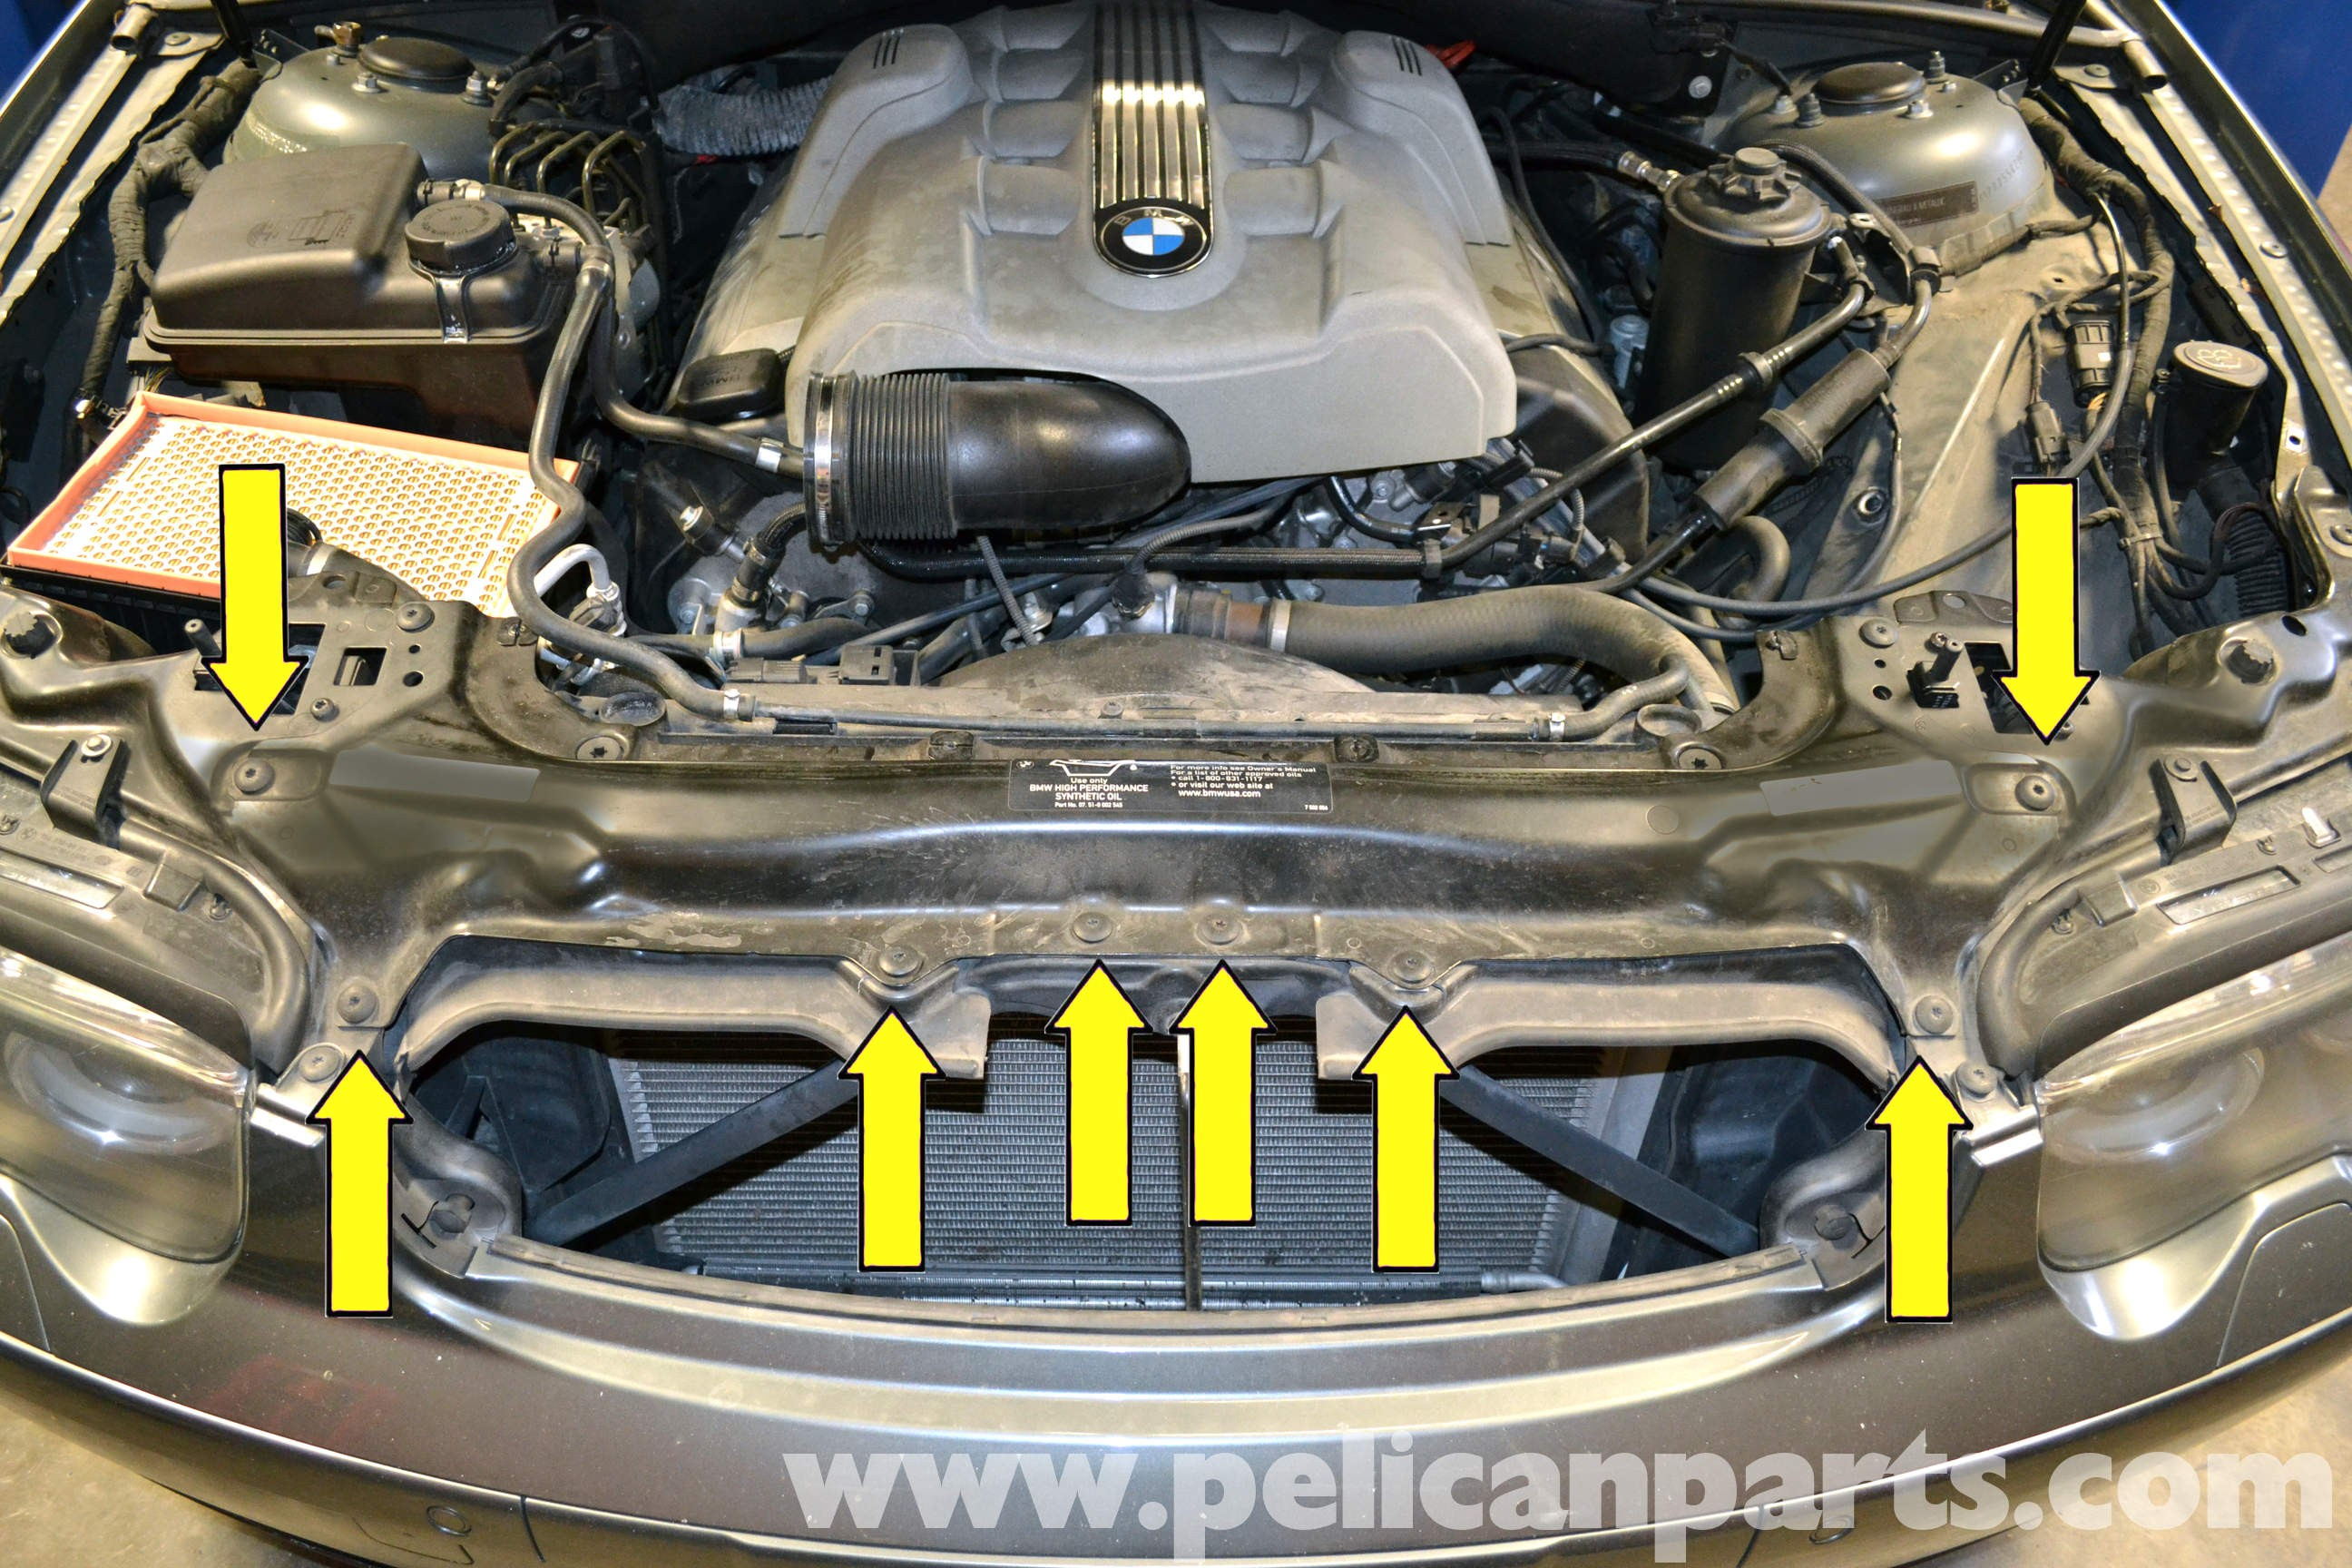 2006 Bmw 750li Engine Diagram - Easy-to-read Wiring Diagrams •